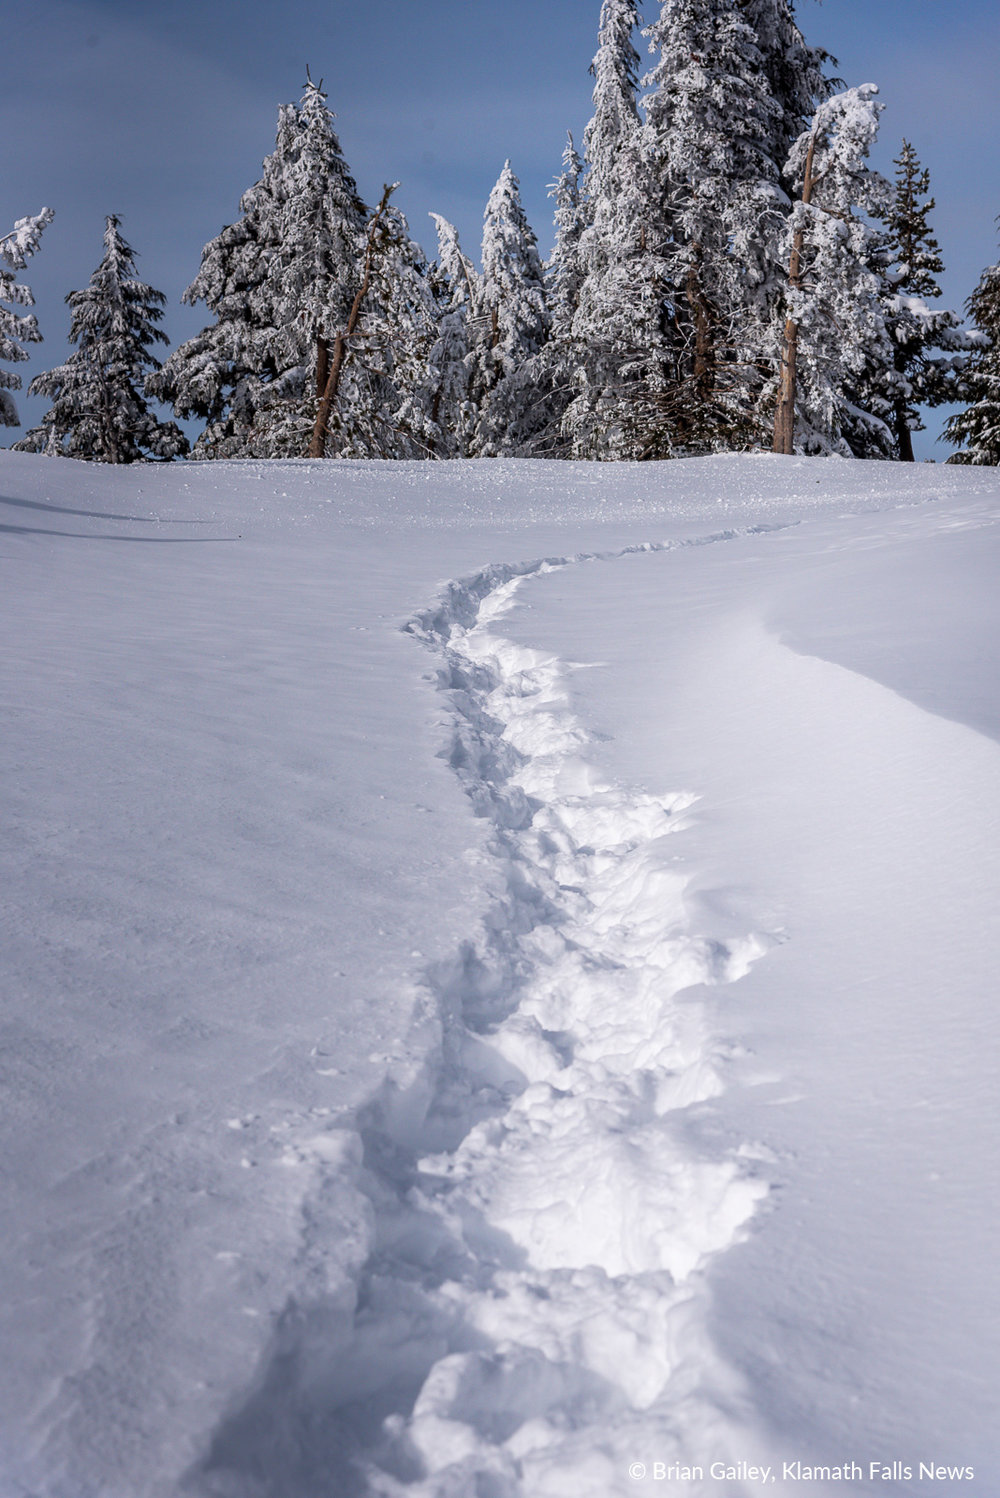 Footsteps in the snow lead to an overlook on the rim of Crater Lake National Park. February 7, 2019 (Image by, Brian Gailey / Klamath Falls News)